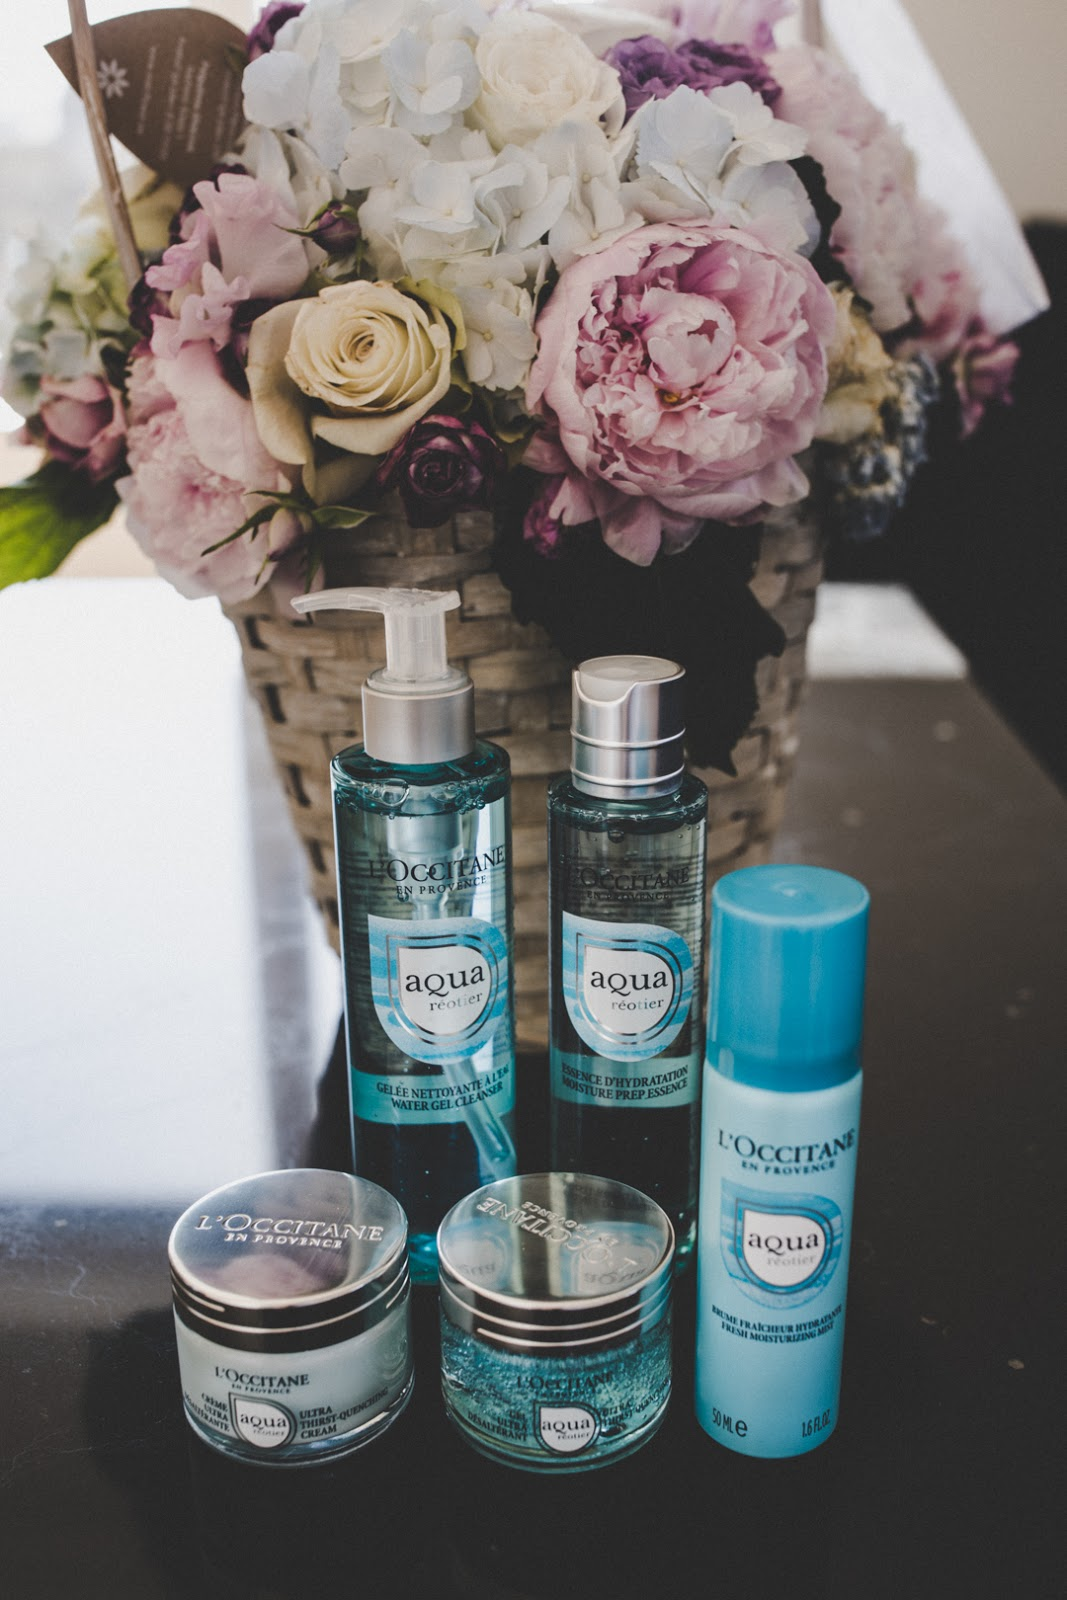 loccitane aqua reotier products review